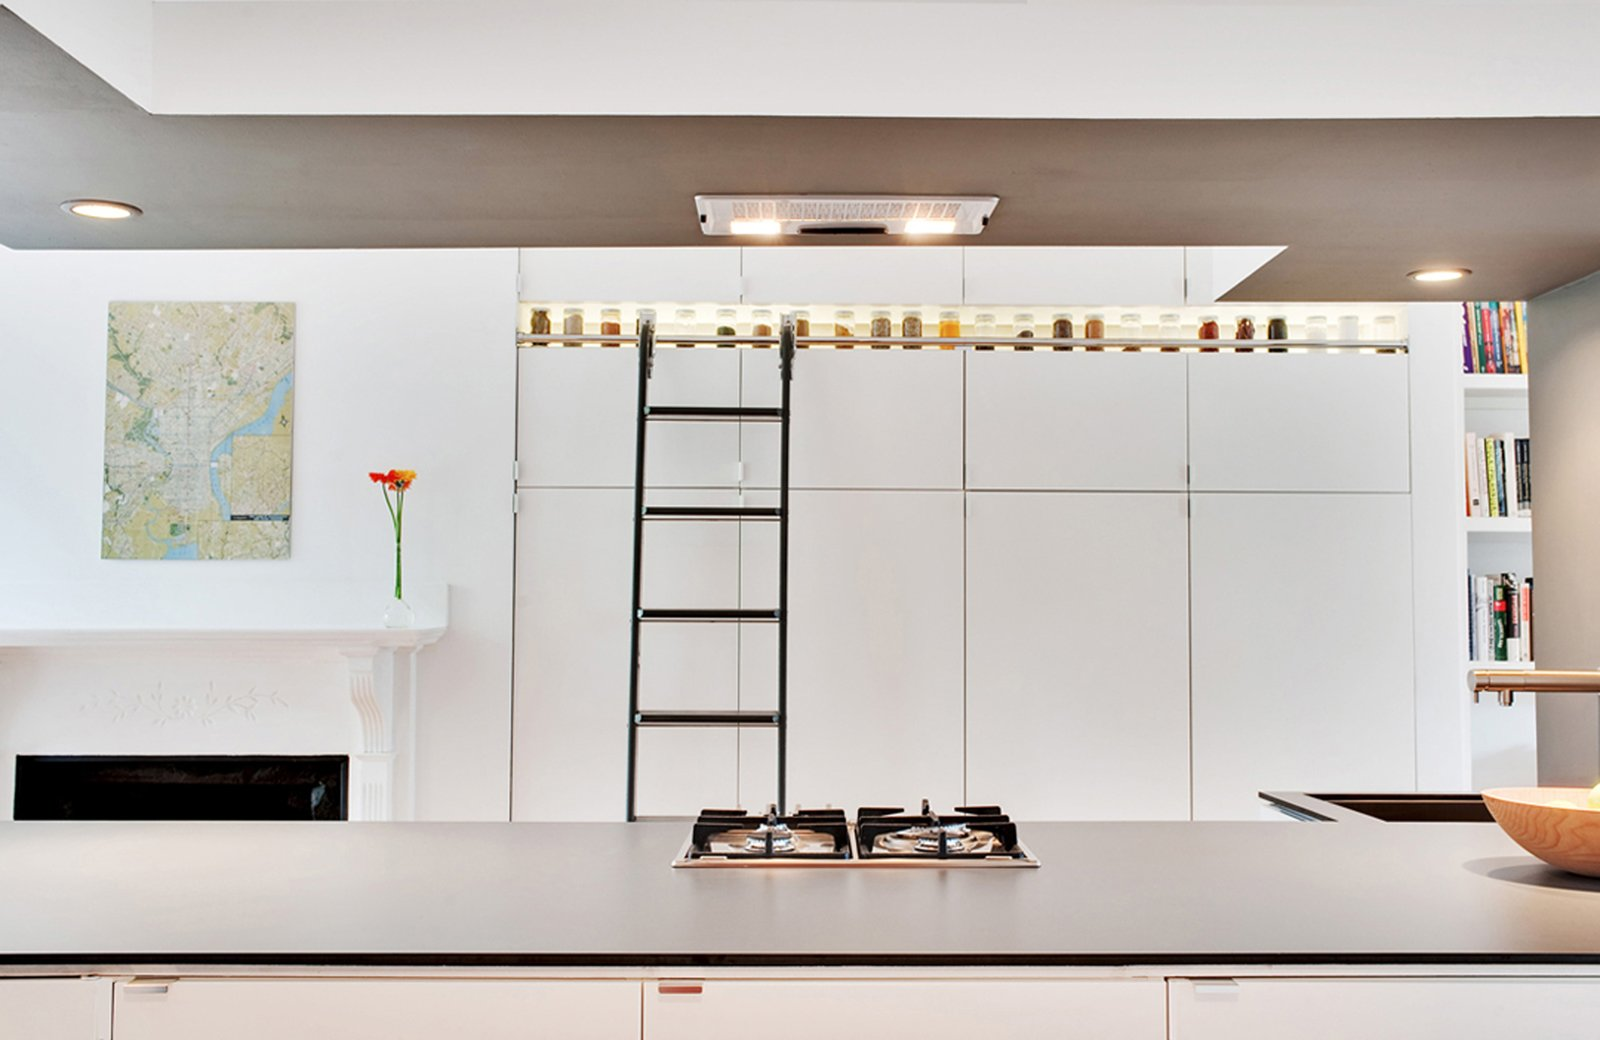 spice racks at ceiling